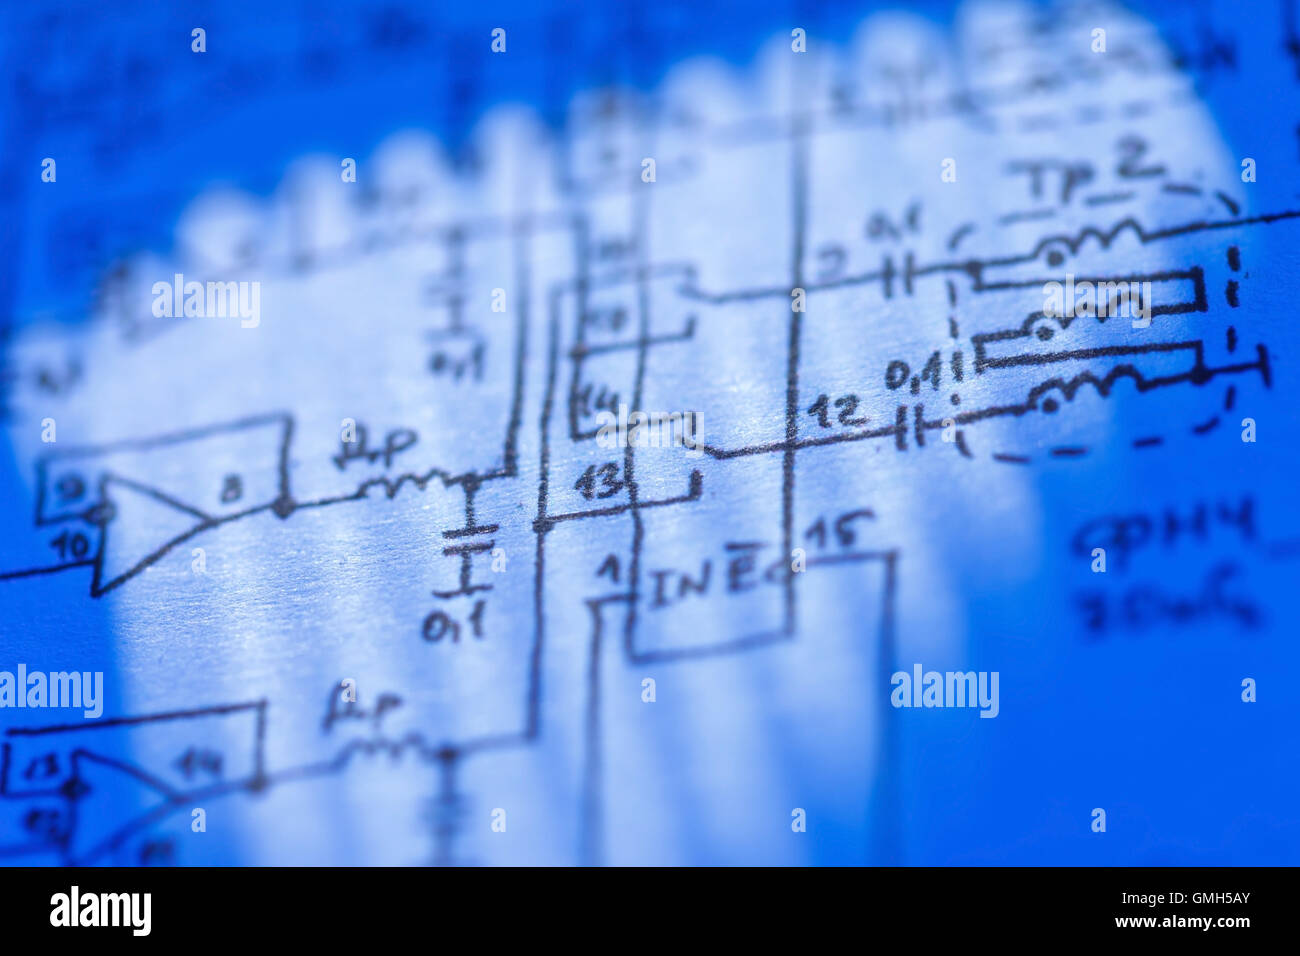 Electronics Schematic Stock Photos Glass On The Electronic Diagramideal Technology Background Image